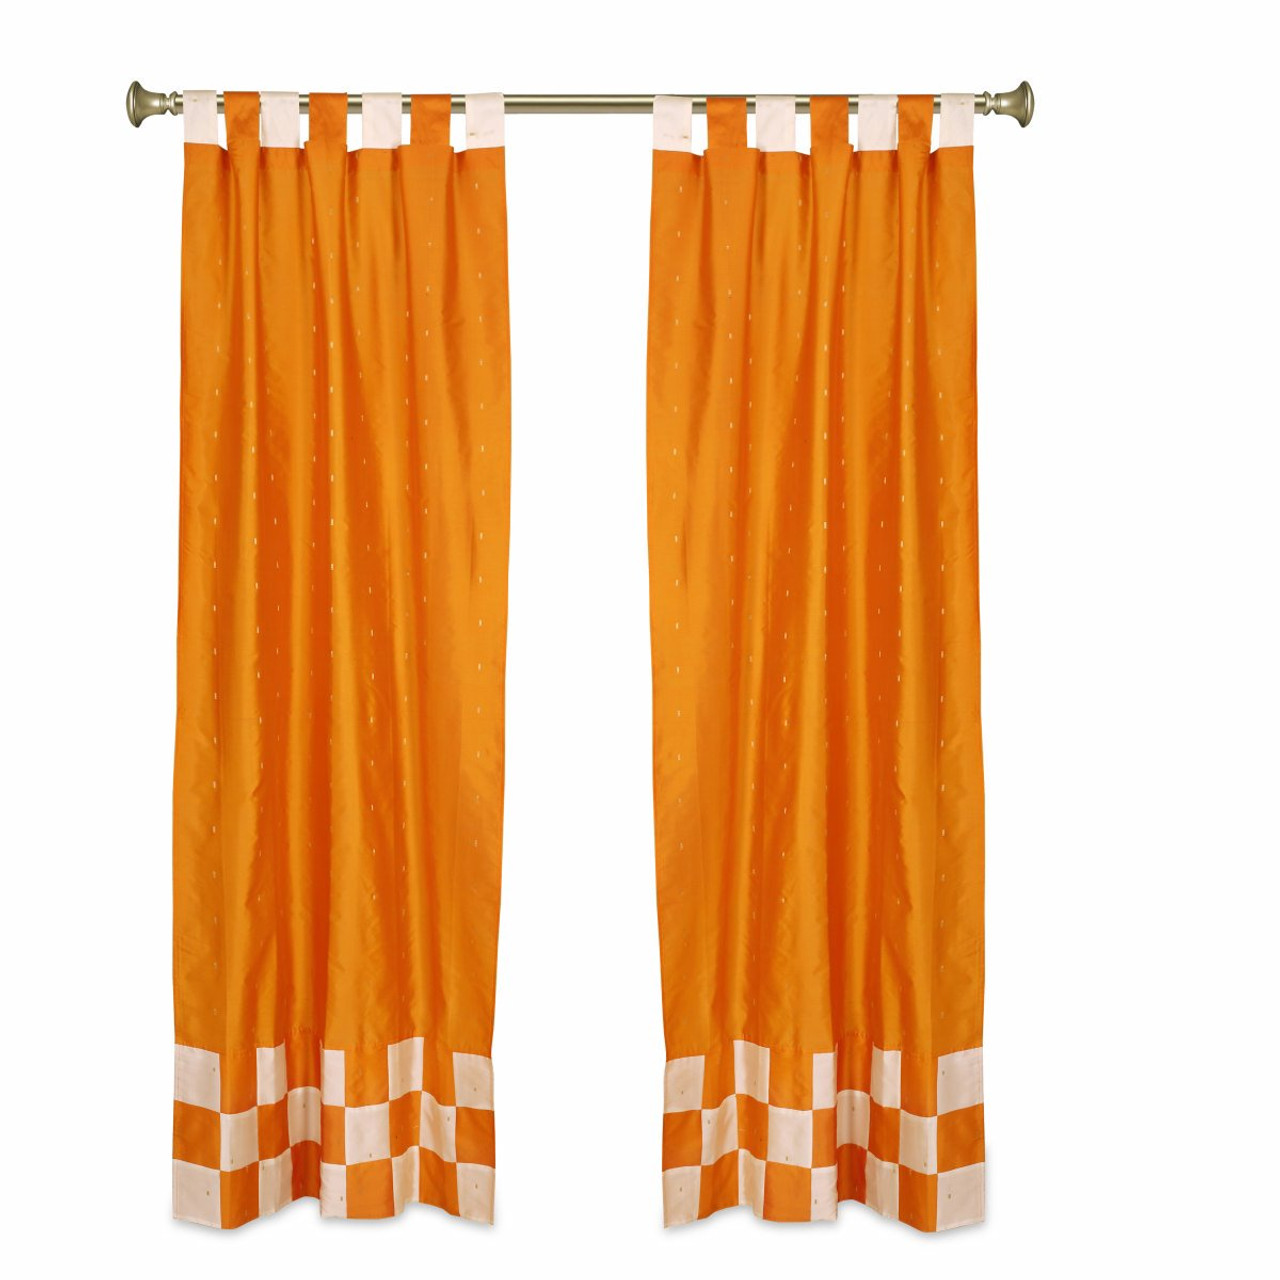 https www indianselections com window dressing bohemian curtains 2 eclectic orange indian check sari curtains tab top drapes